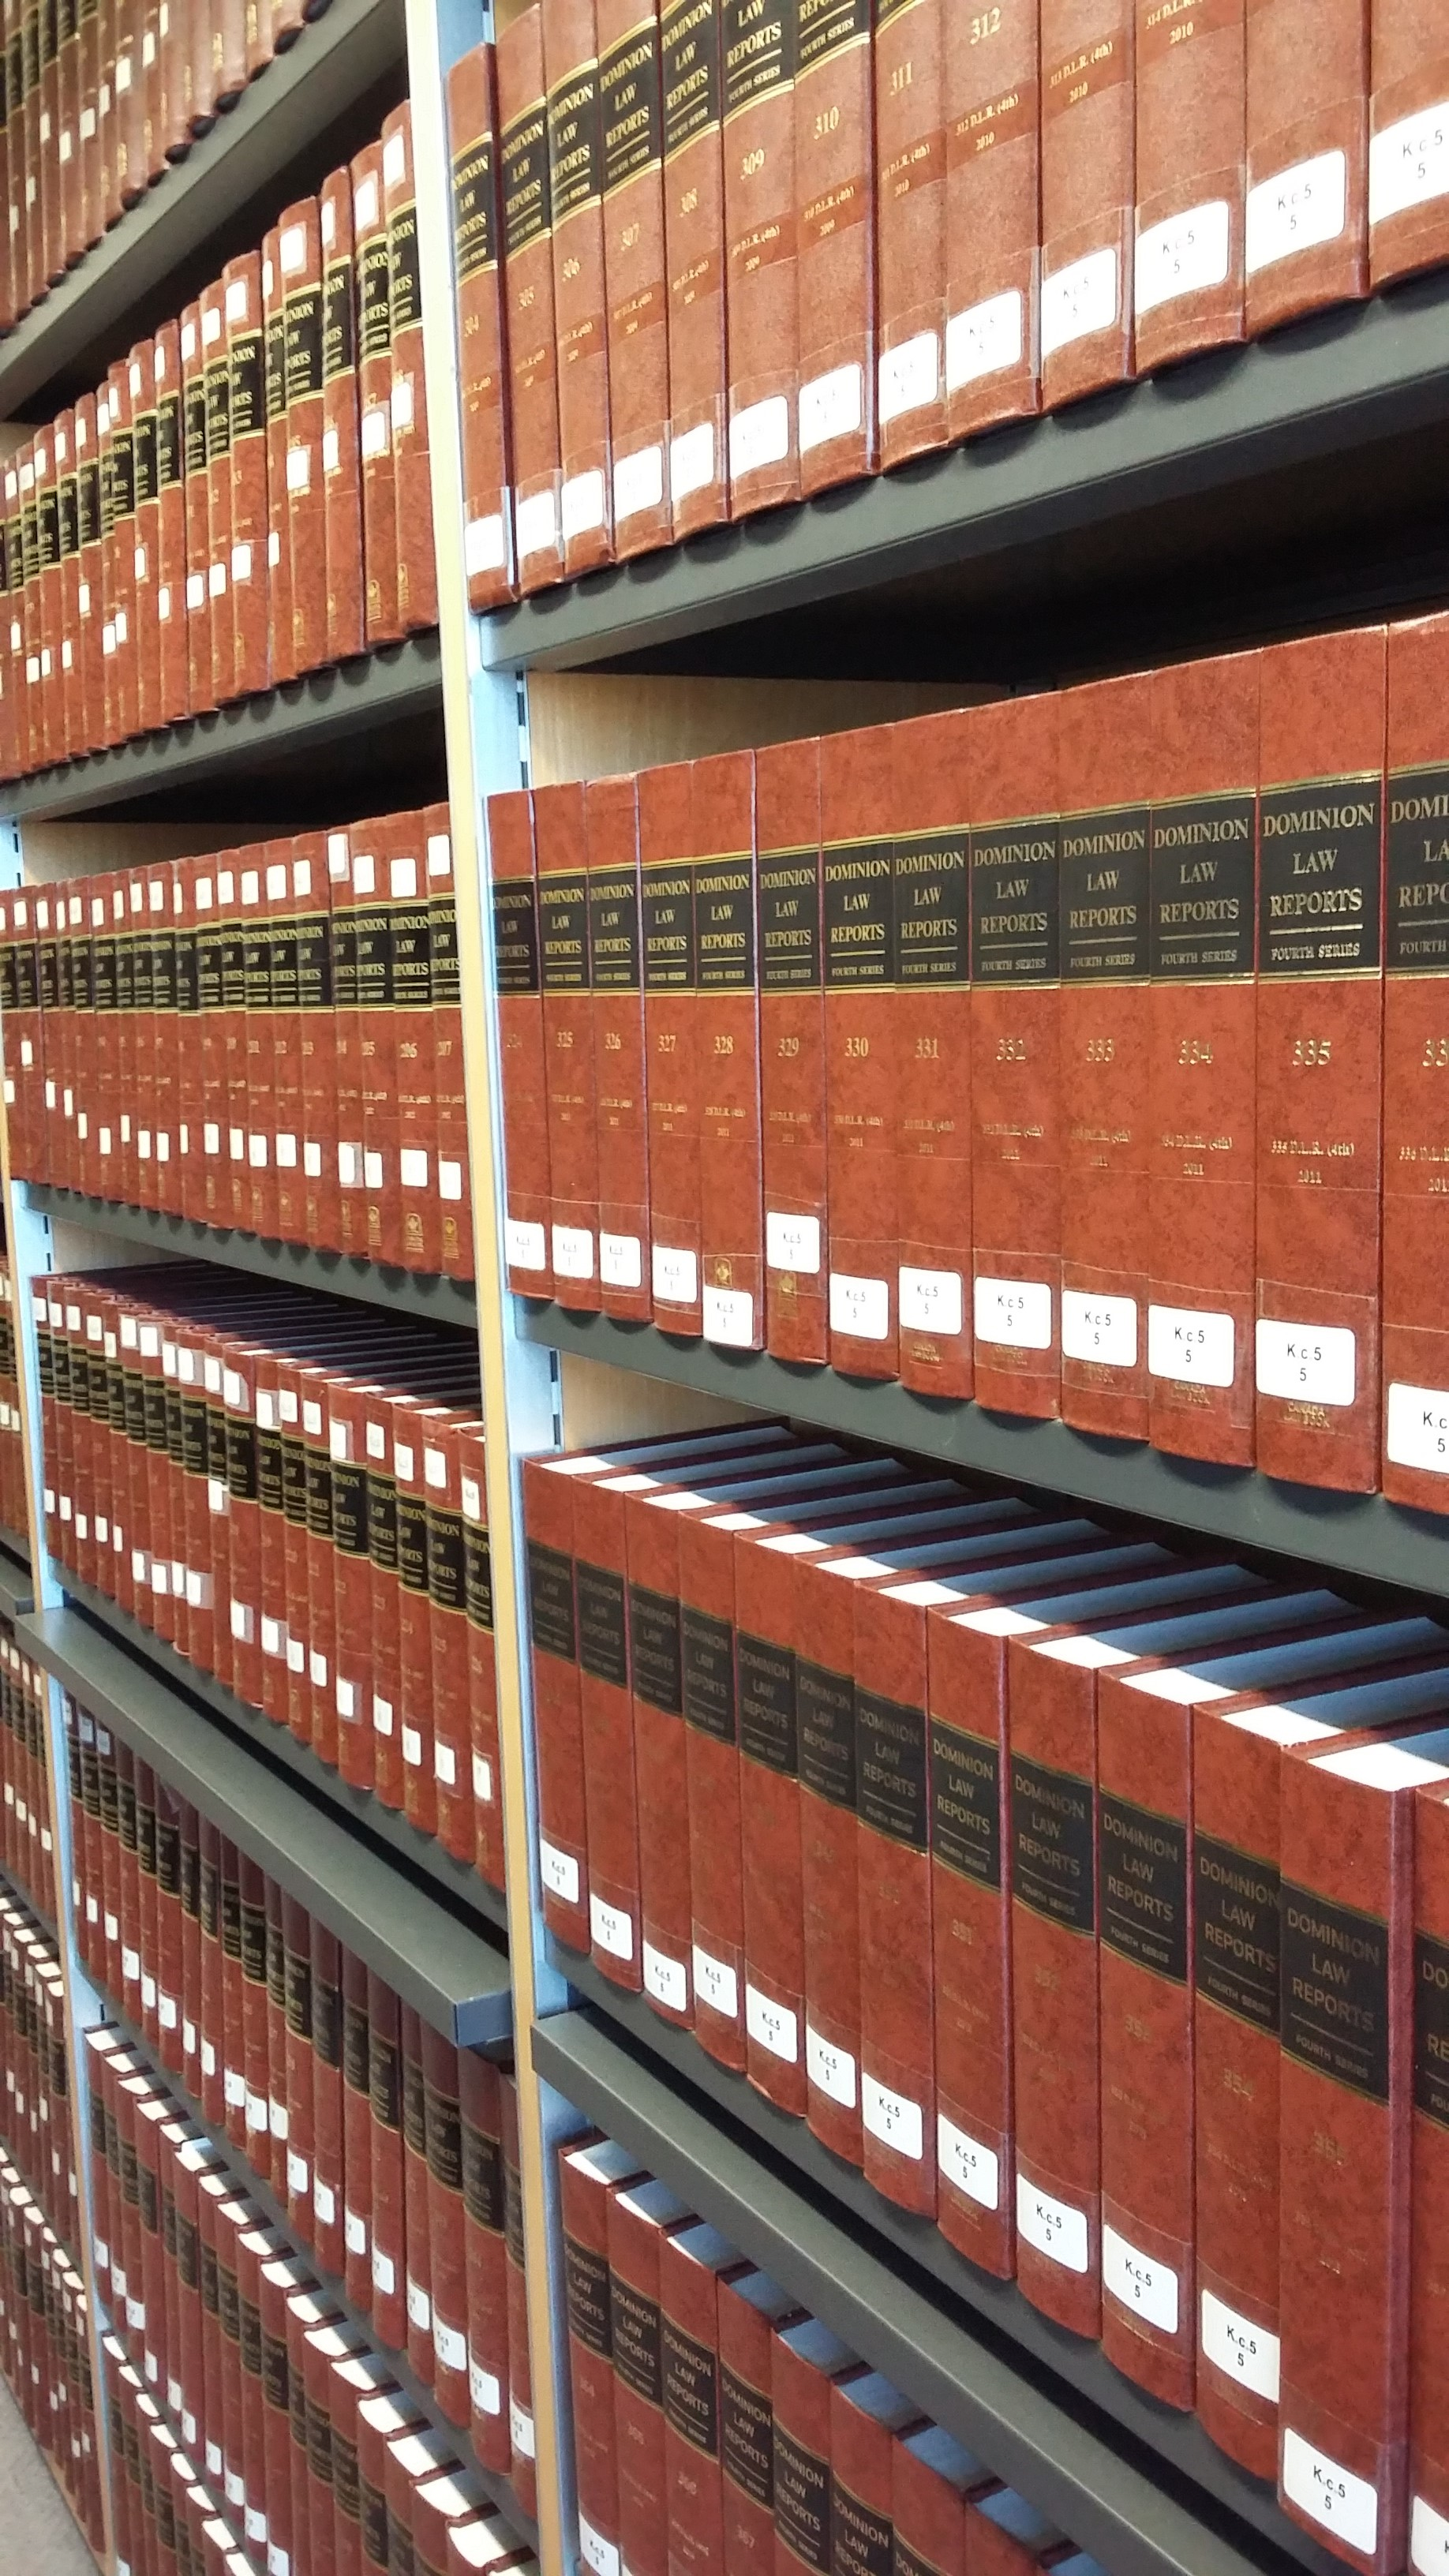 Photo of the three stacks of brown, black and gold volumes of the Dominion Law Reports on shelves in the Squire Law Library.